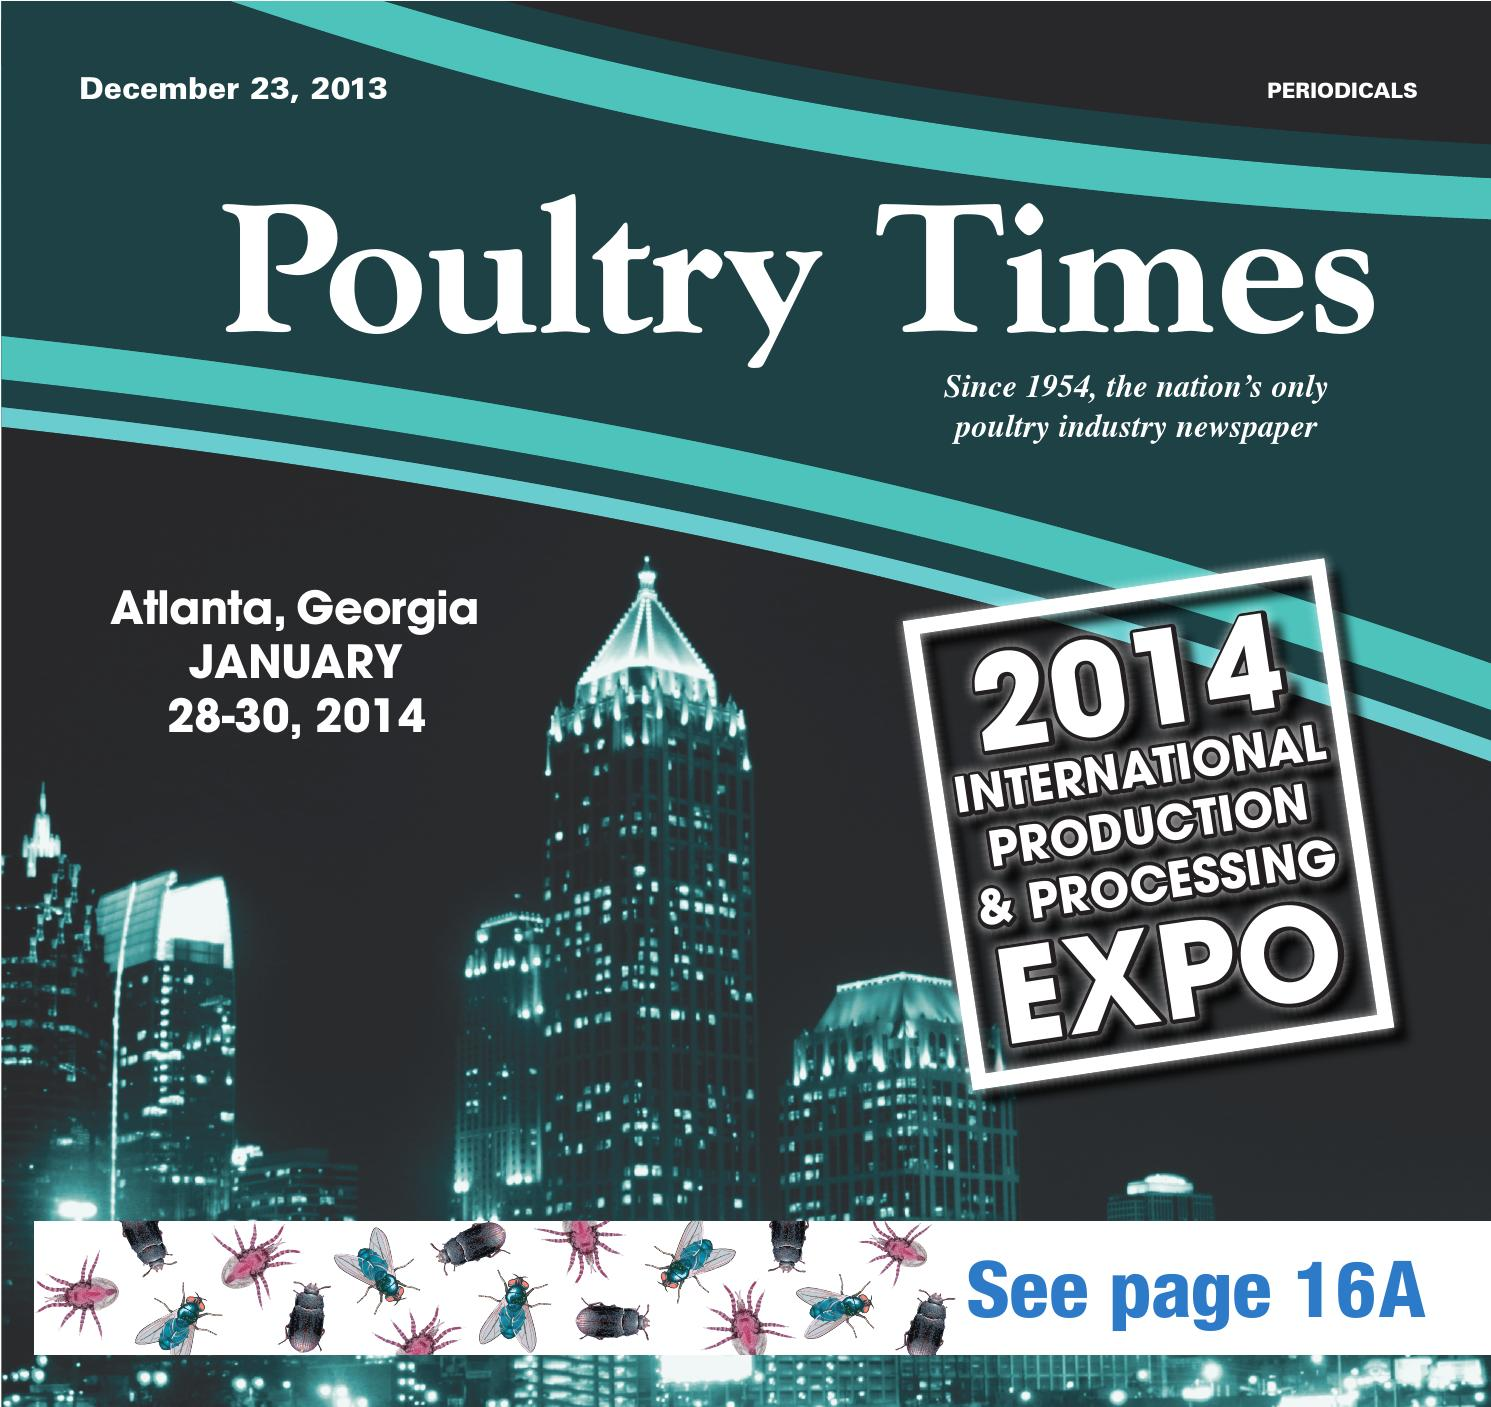 Poultry Times December 23 2013 Edition By The Issuu Electric Fuel Pump For 7076 Porsche Vw Beetle Transporter Vanagon 912